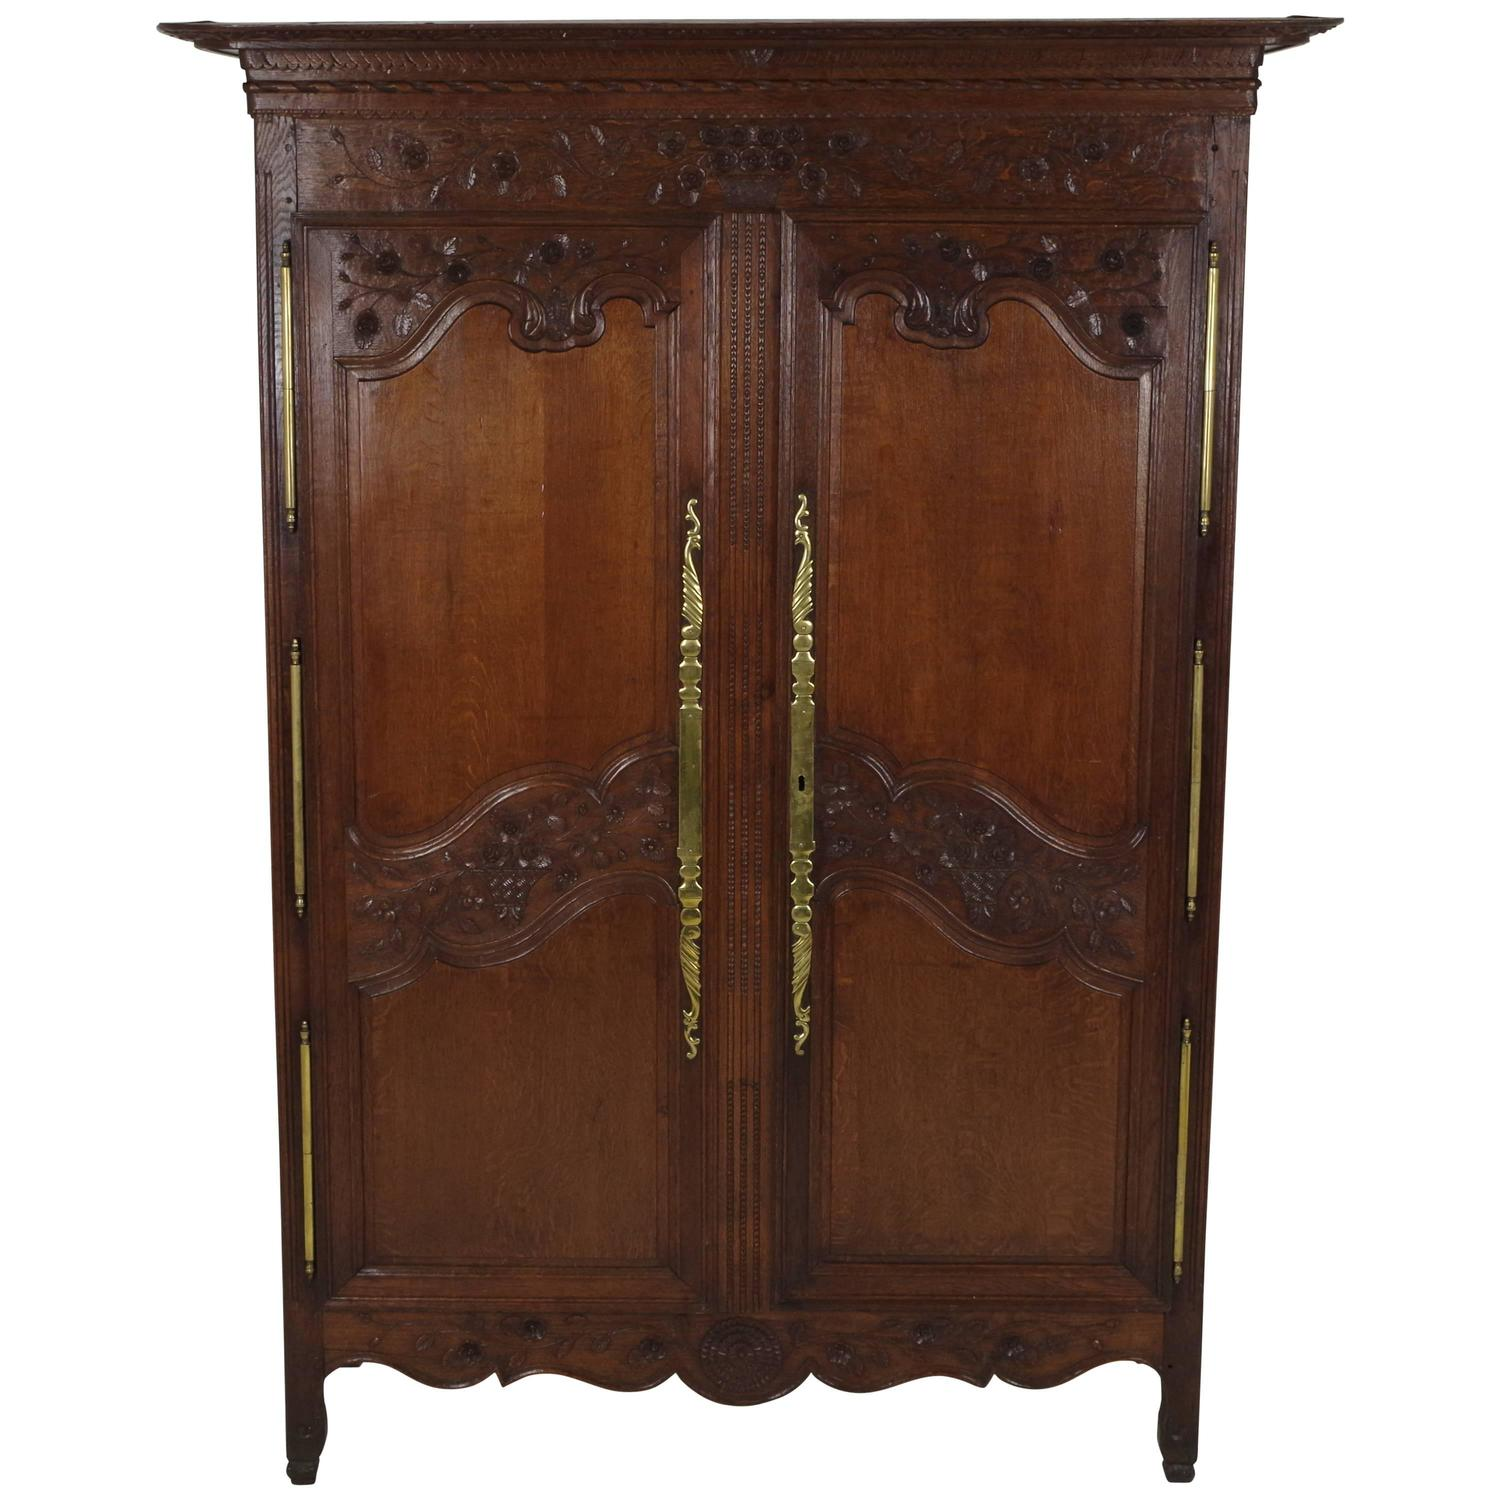 B238 antique french normandy marriage armoire wardrobe 1840 at 1stdibs - French style armoire wardrobe ...